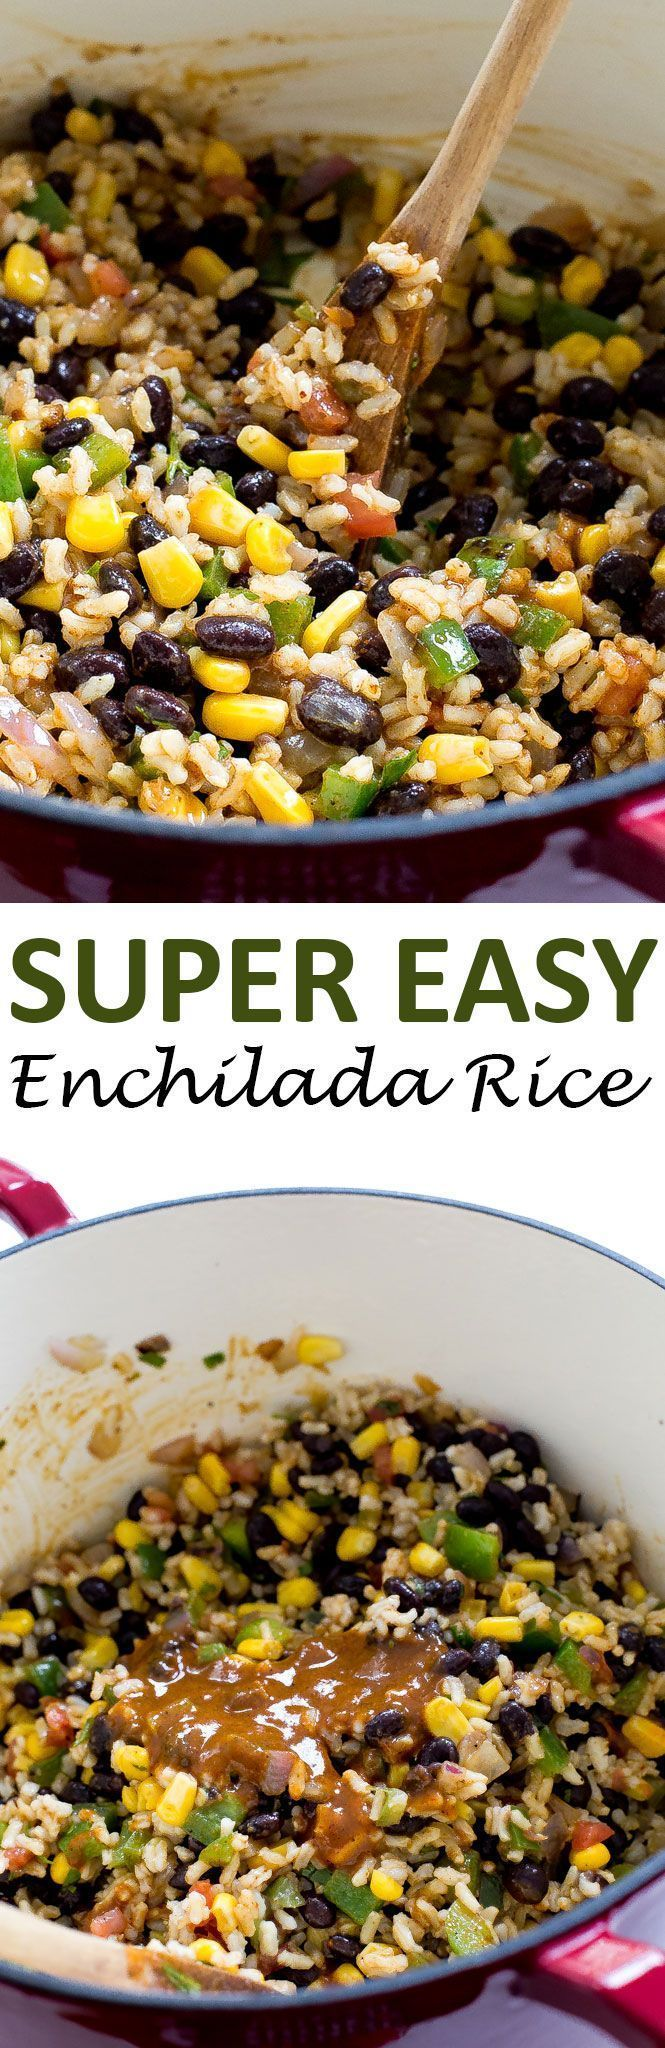 Super Easy Enchilada Rice made with homemade enchilada sauce! Loaded with onions, black beans, corn, bell pepper and salsa. The perfect side dish! | chefsavvy.com